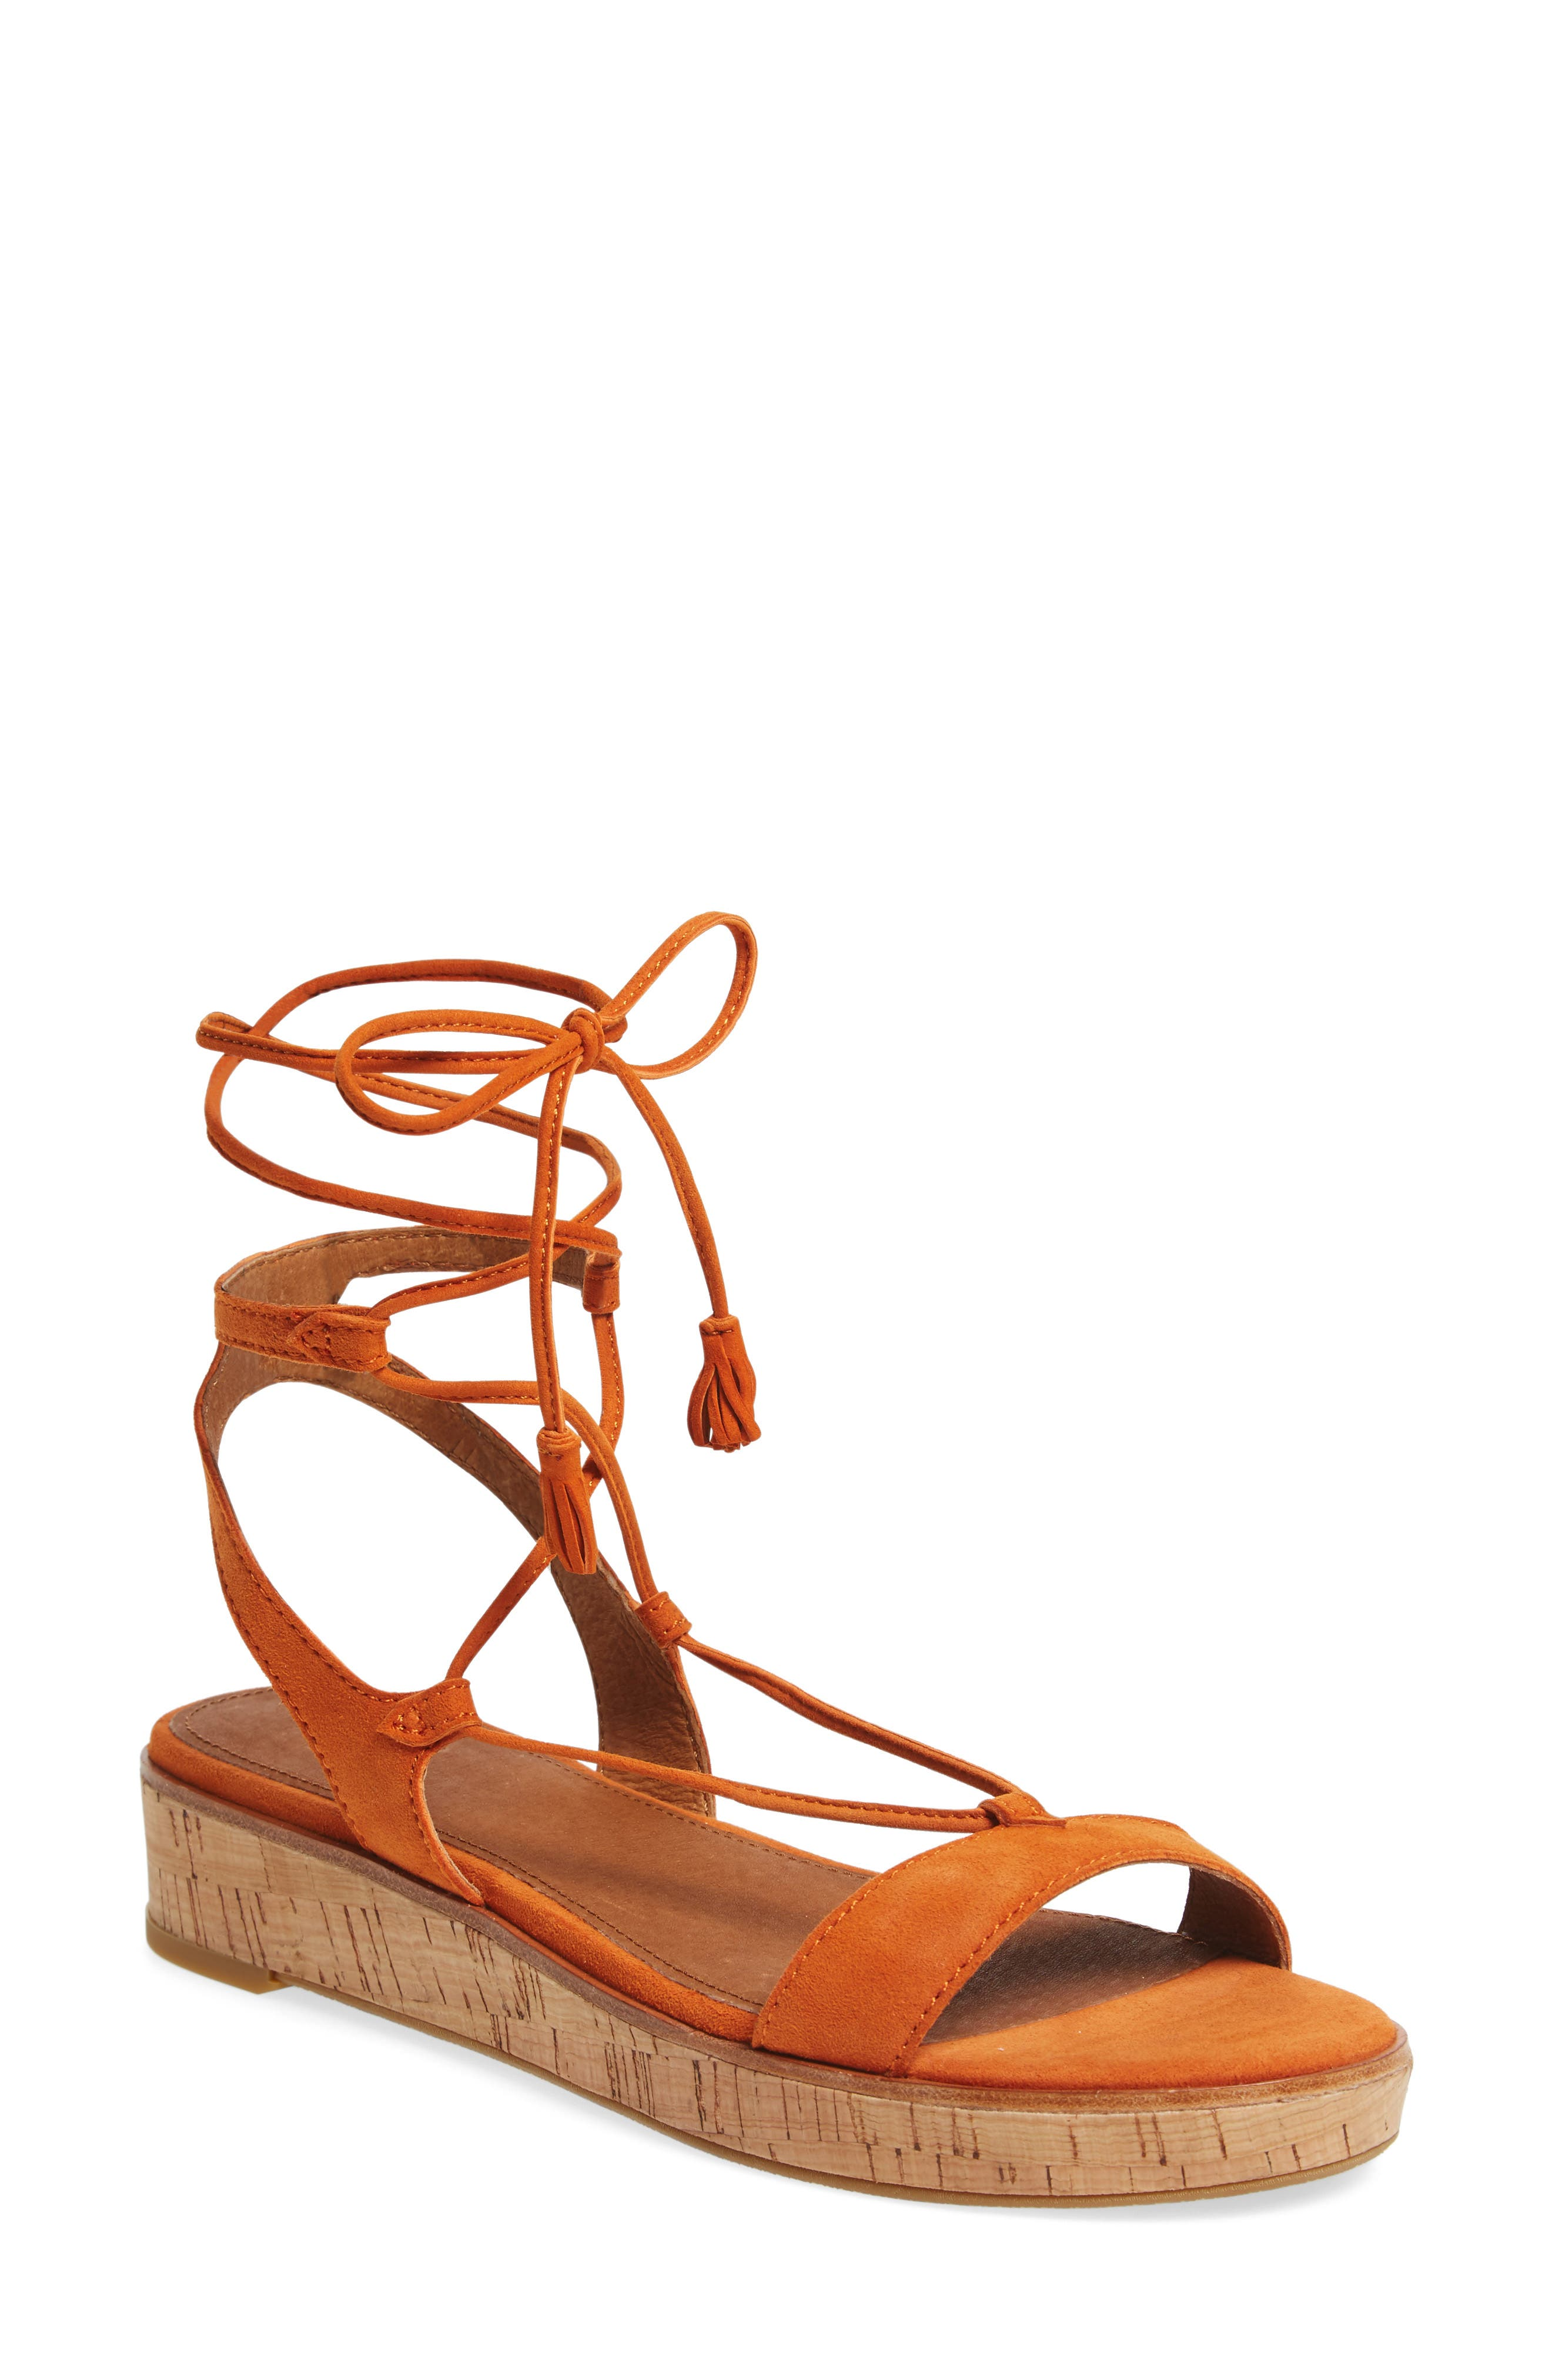 Alternate Image 1 Selected - Frye Miranda Gladiator Platform Sandal (Women)